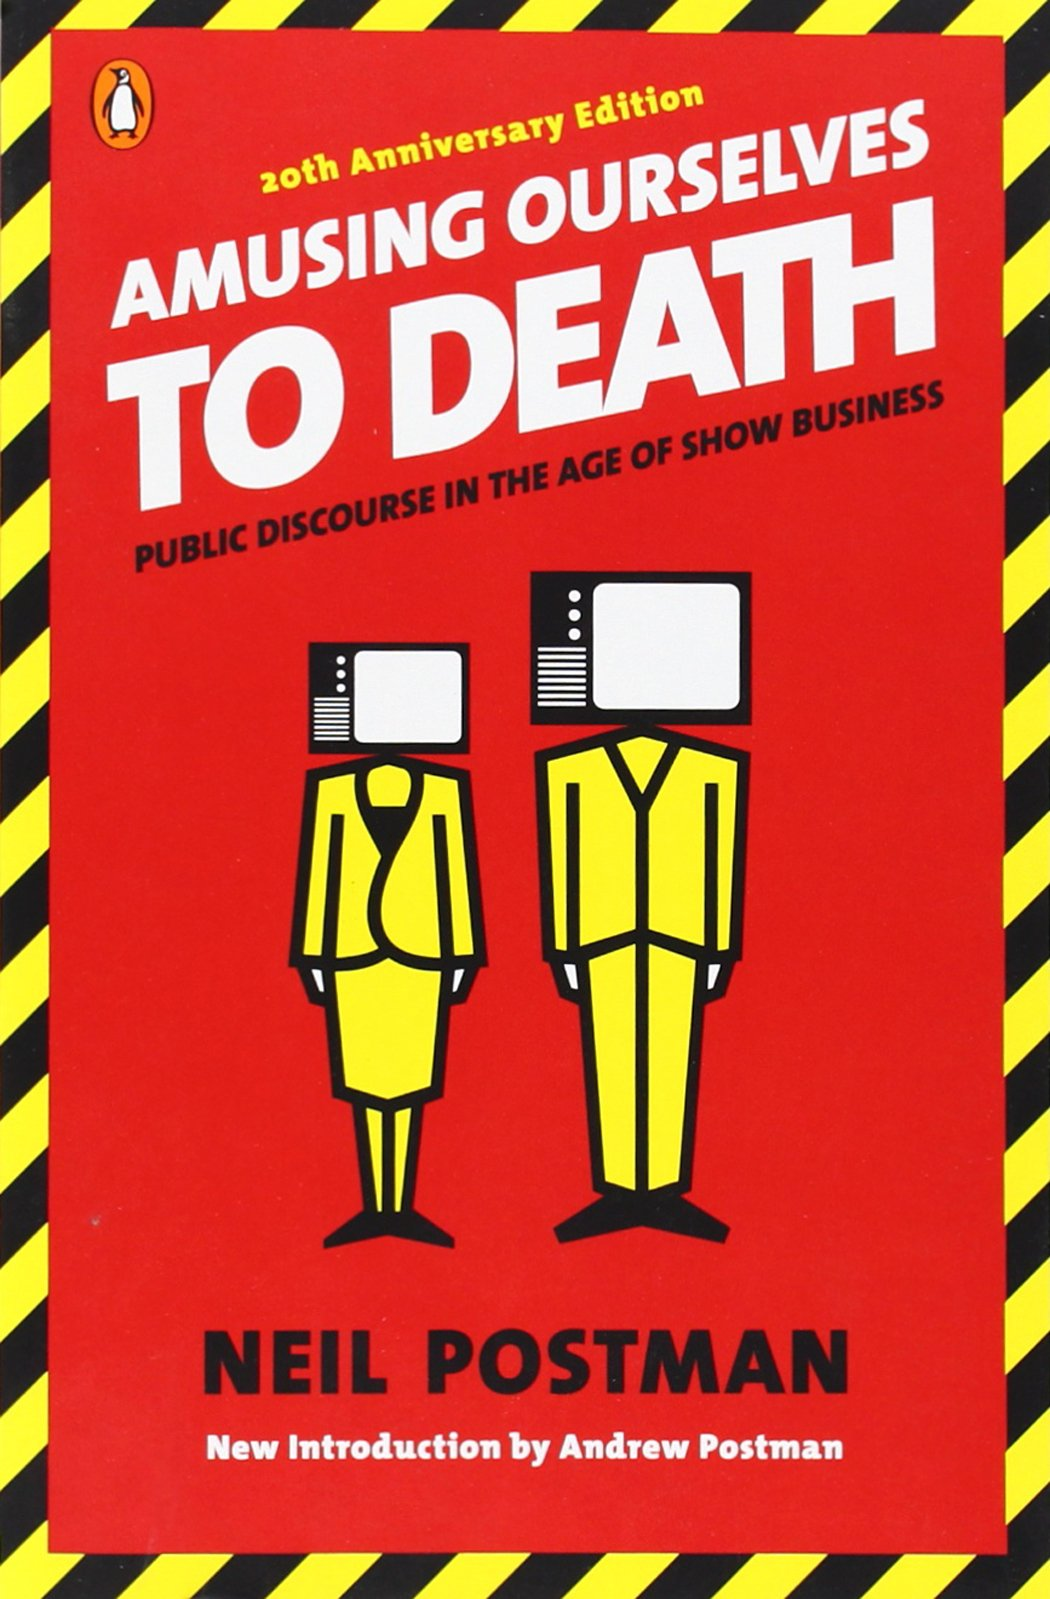 amusing ourselves to death public discourse in the age of show  amusing ourselves to death public discourse in the age of show business neil postman andrew postman 8601420133051 com books